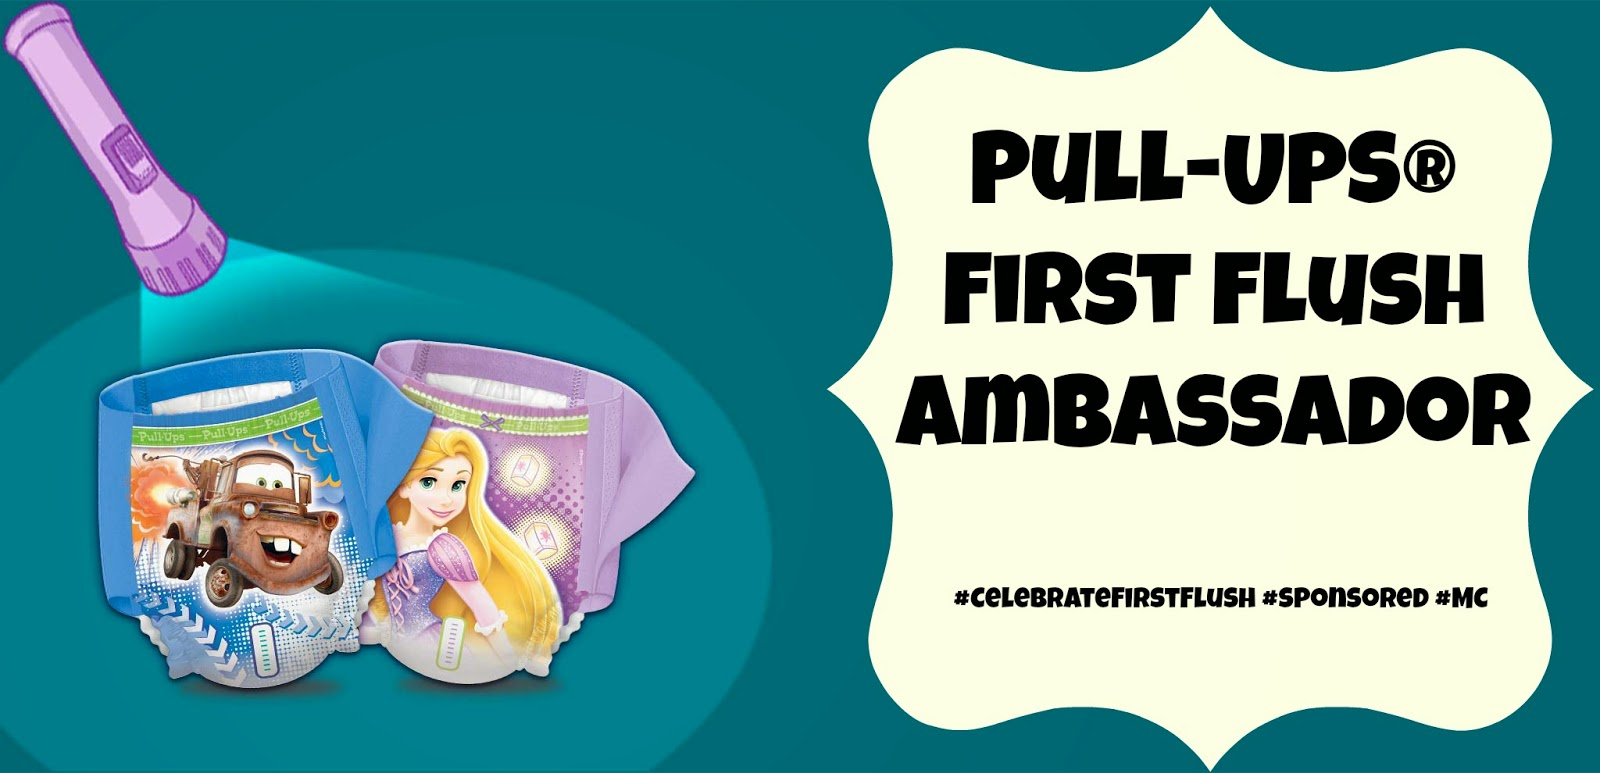 Pull-Ups® First Flush Ambassador #CelebrateFirstFlush #sponsored #MC